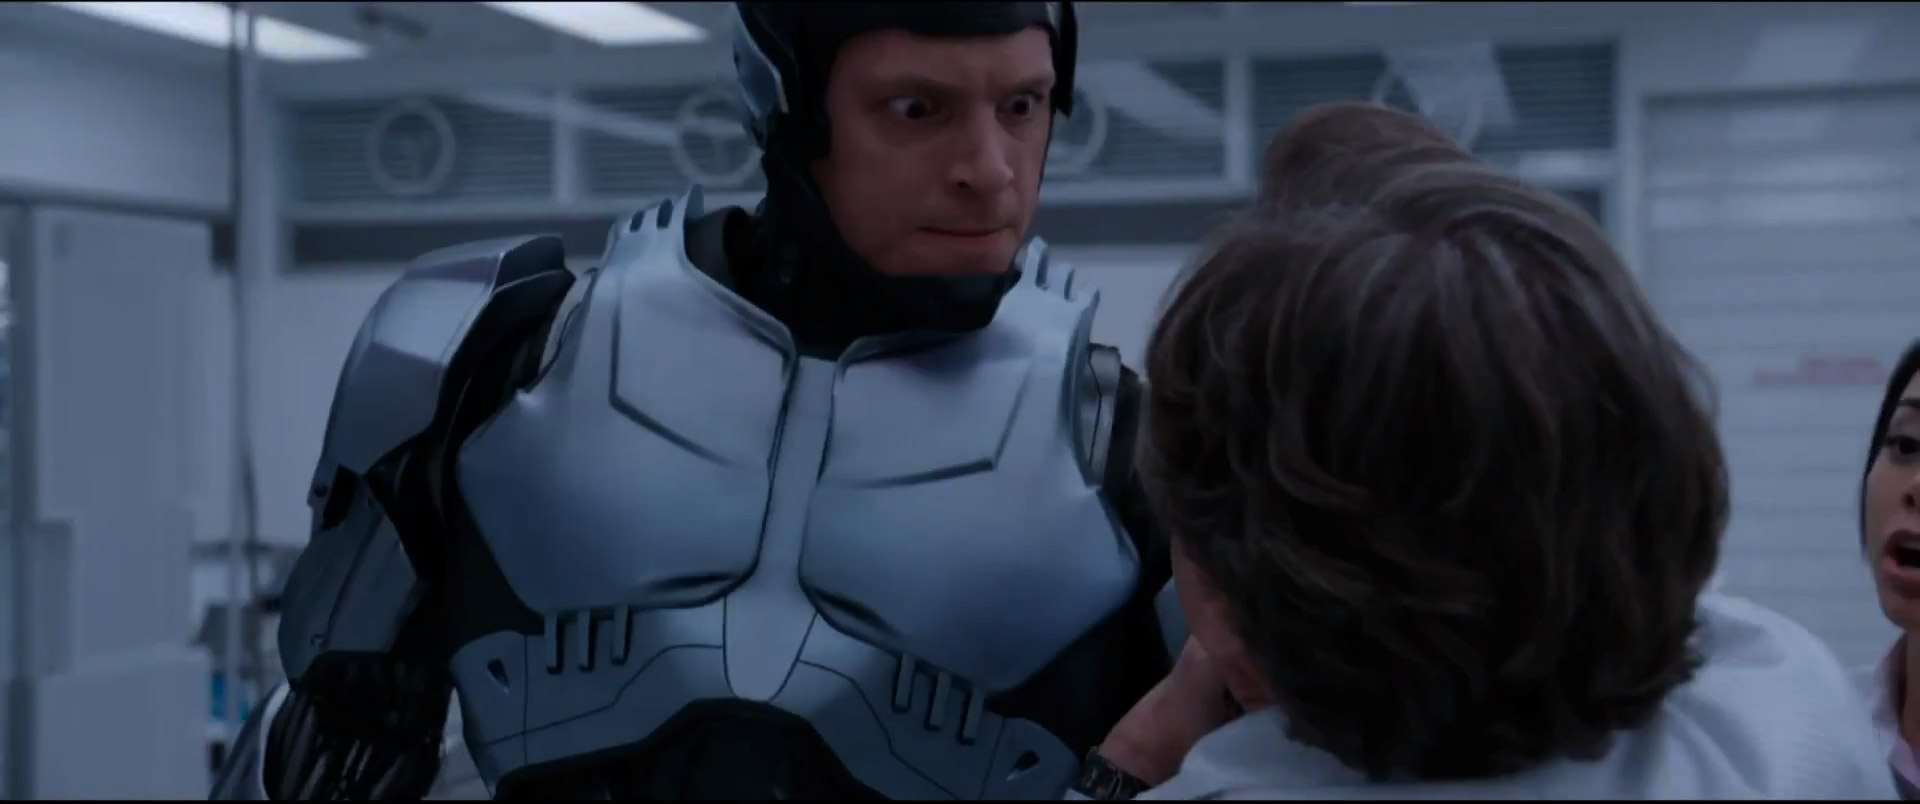 first-awesome-trailer-for-robocop-15.jpg